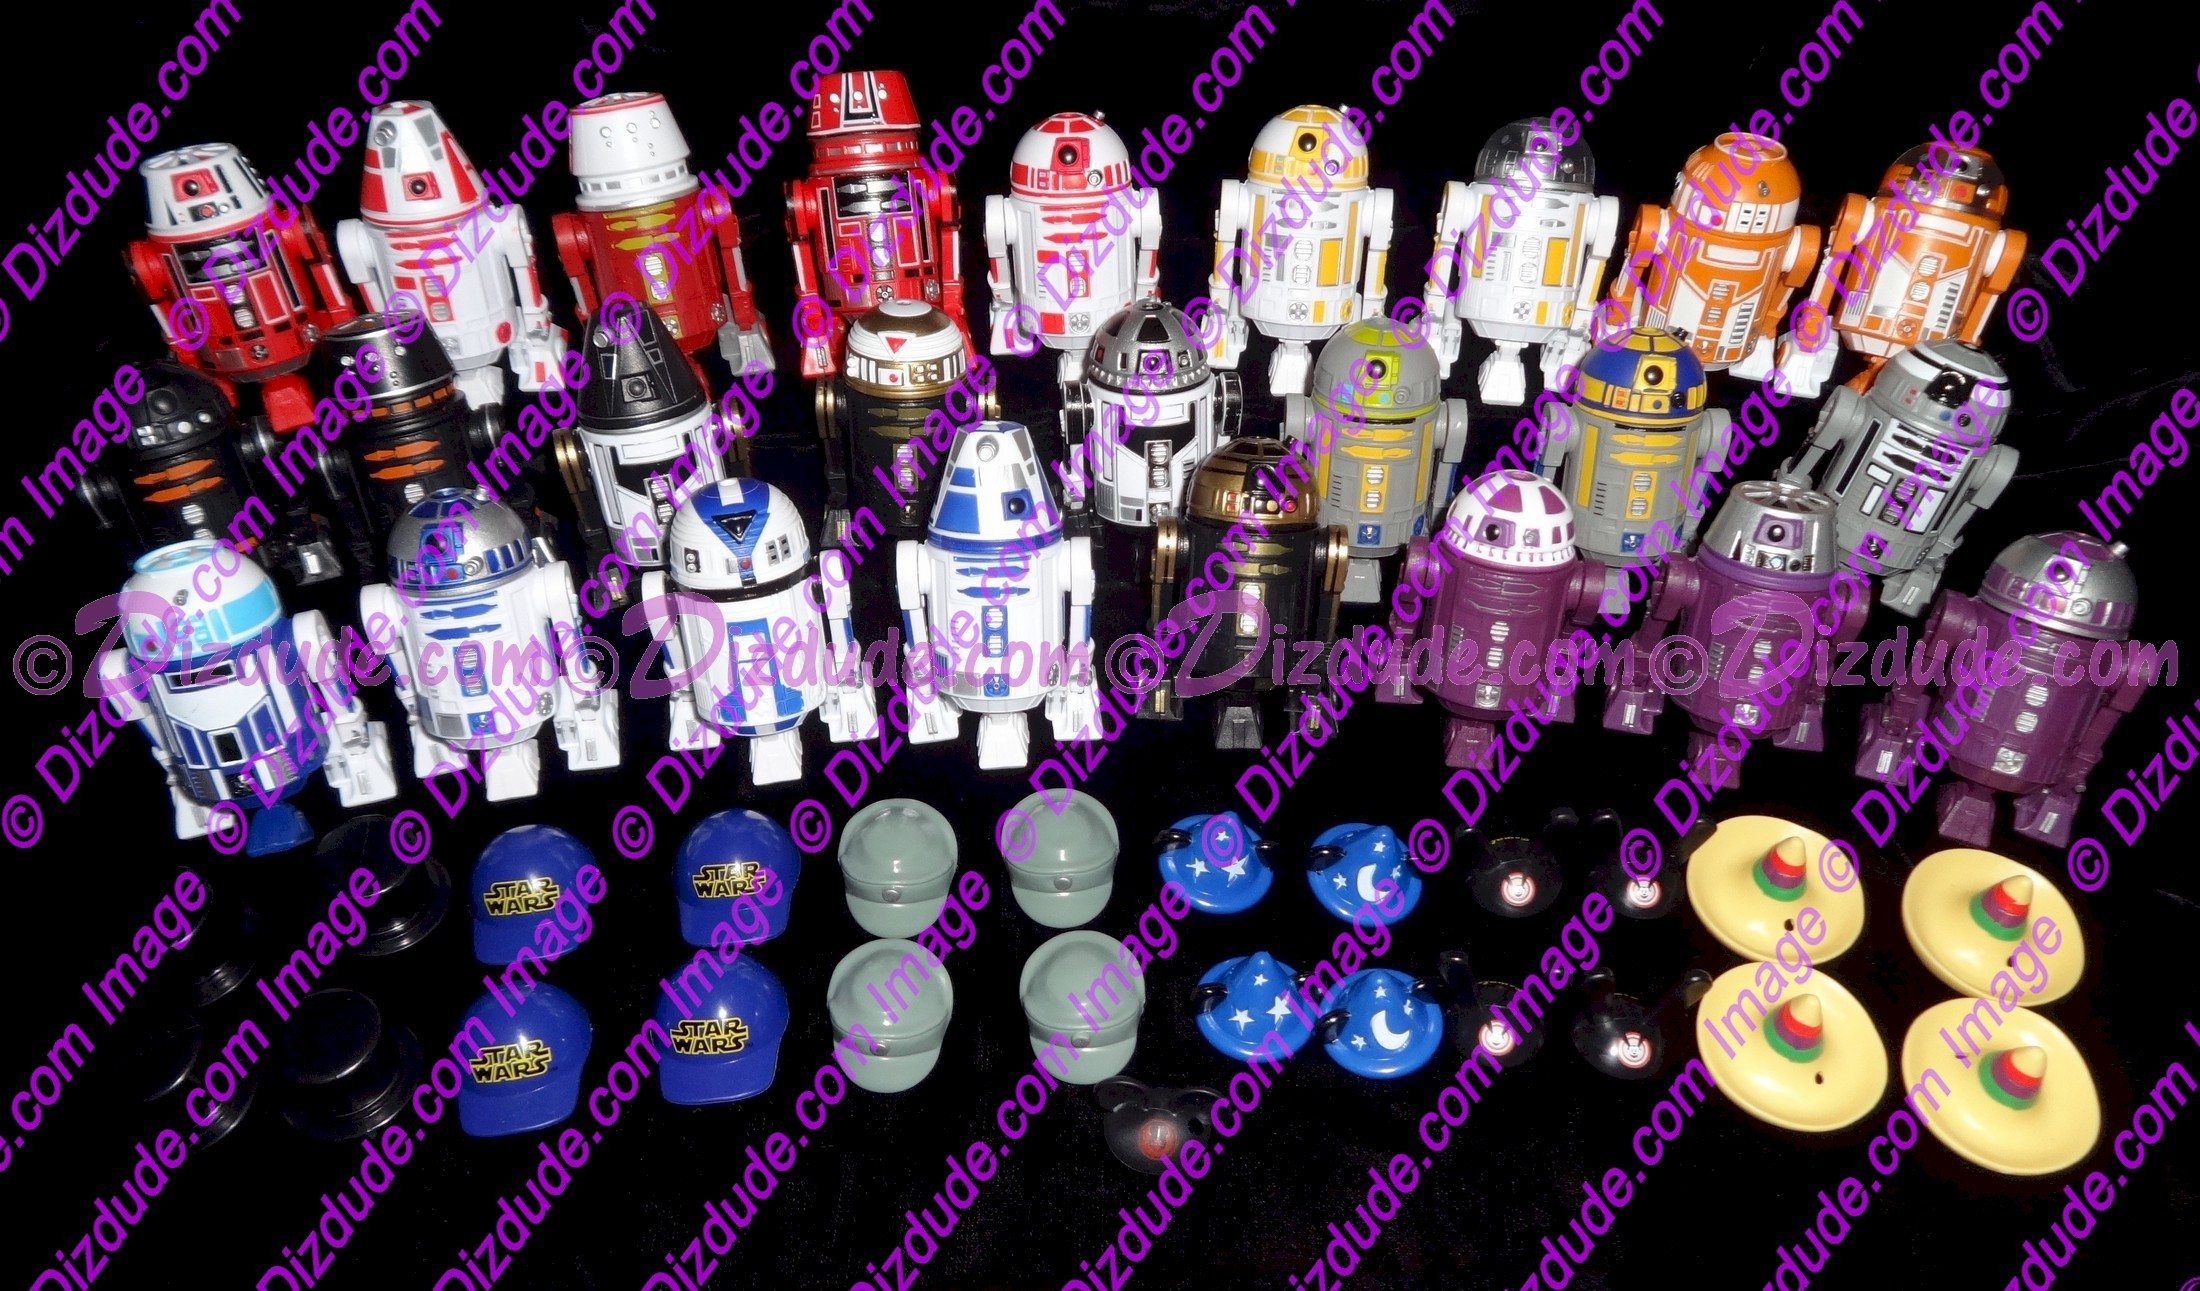 Full Set of All 25 Droids Series 2 from Disney Star Wars Astromech Build-A-Droid Factory © Dizdude.com